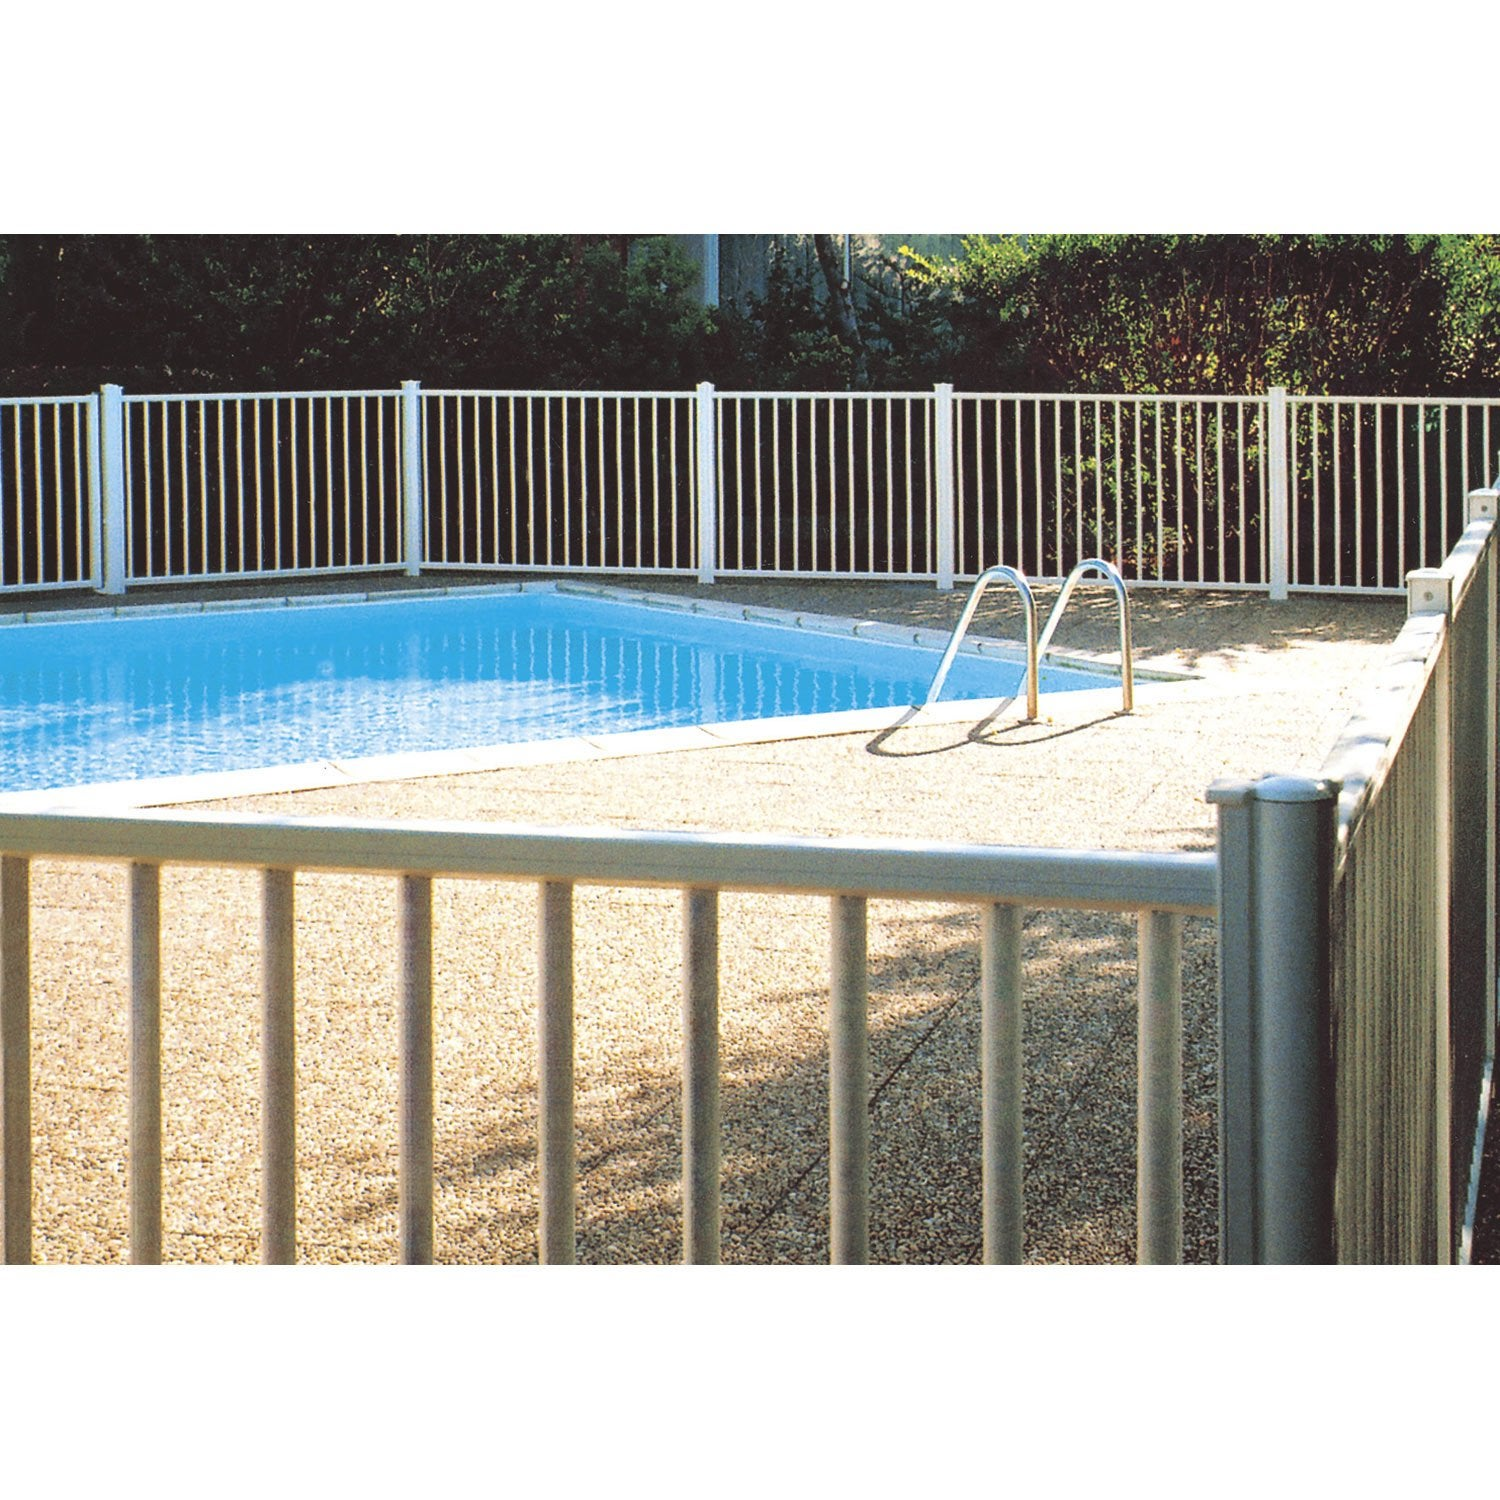 Barri re pour piscine aluminium issambres blanc 9010 h for Barriere de piscine